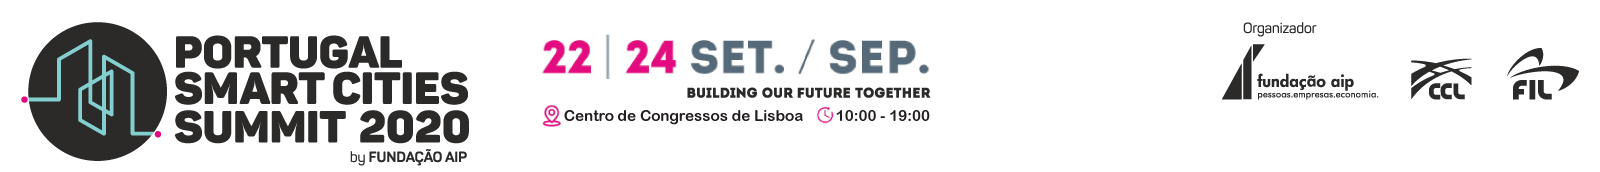 Portugal Smart Cities Summit Logo